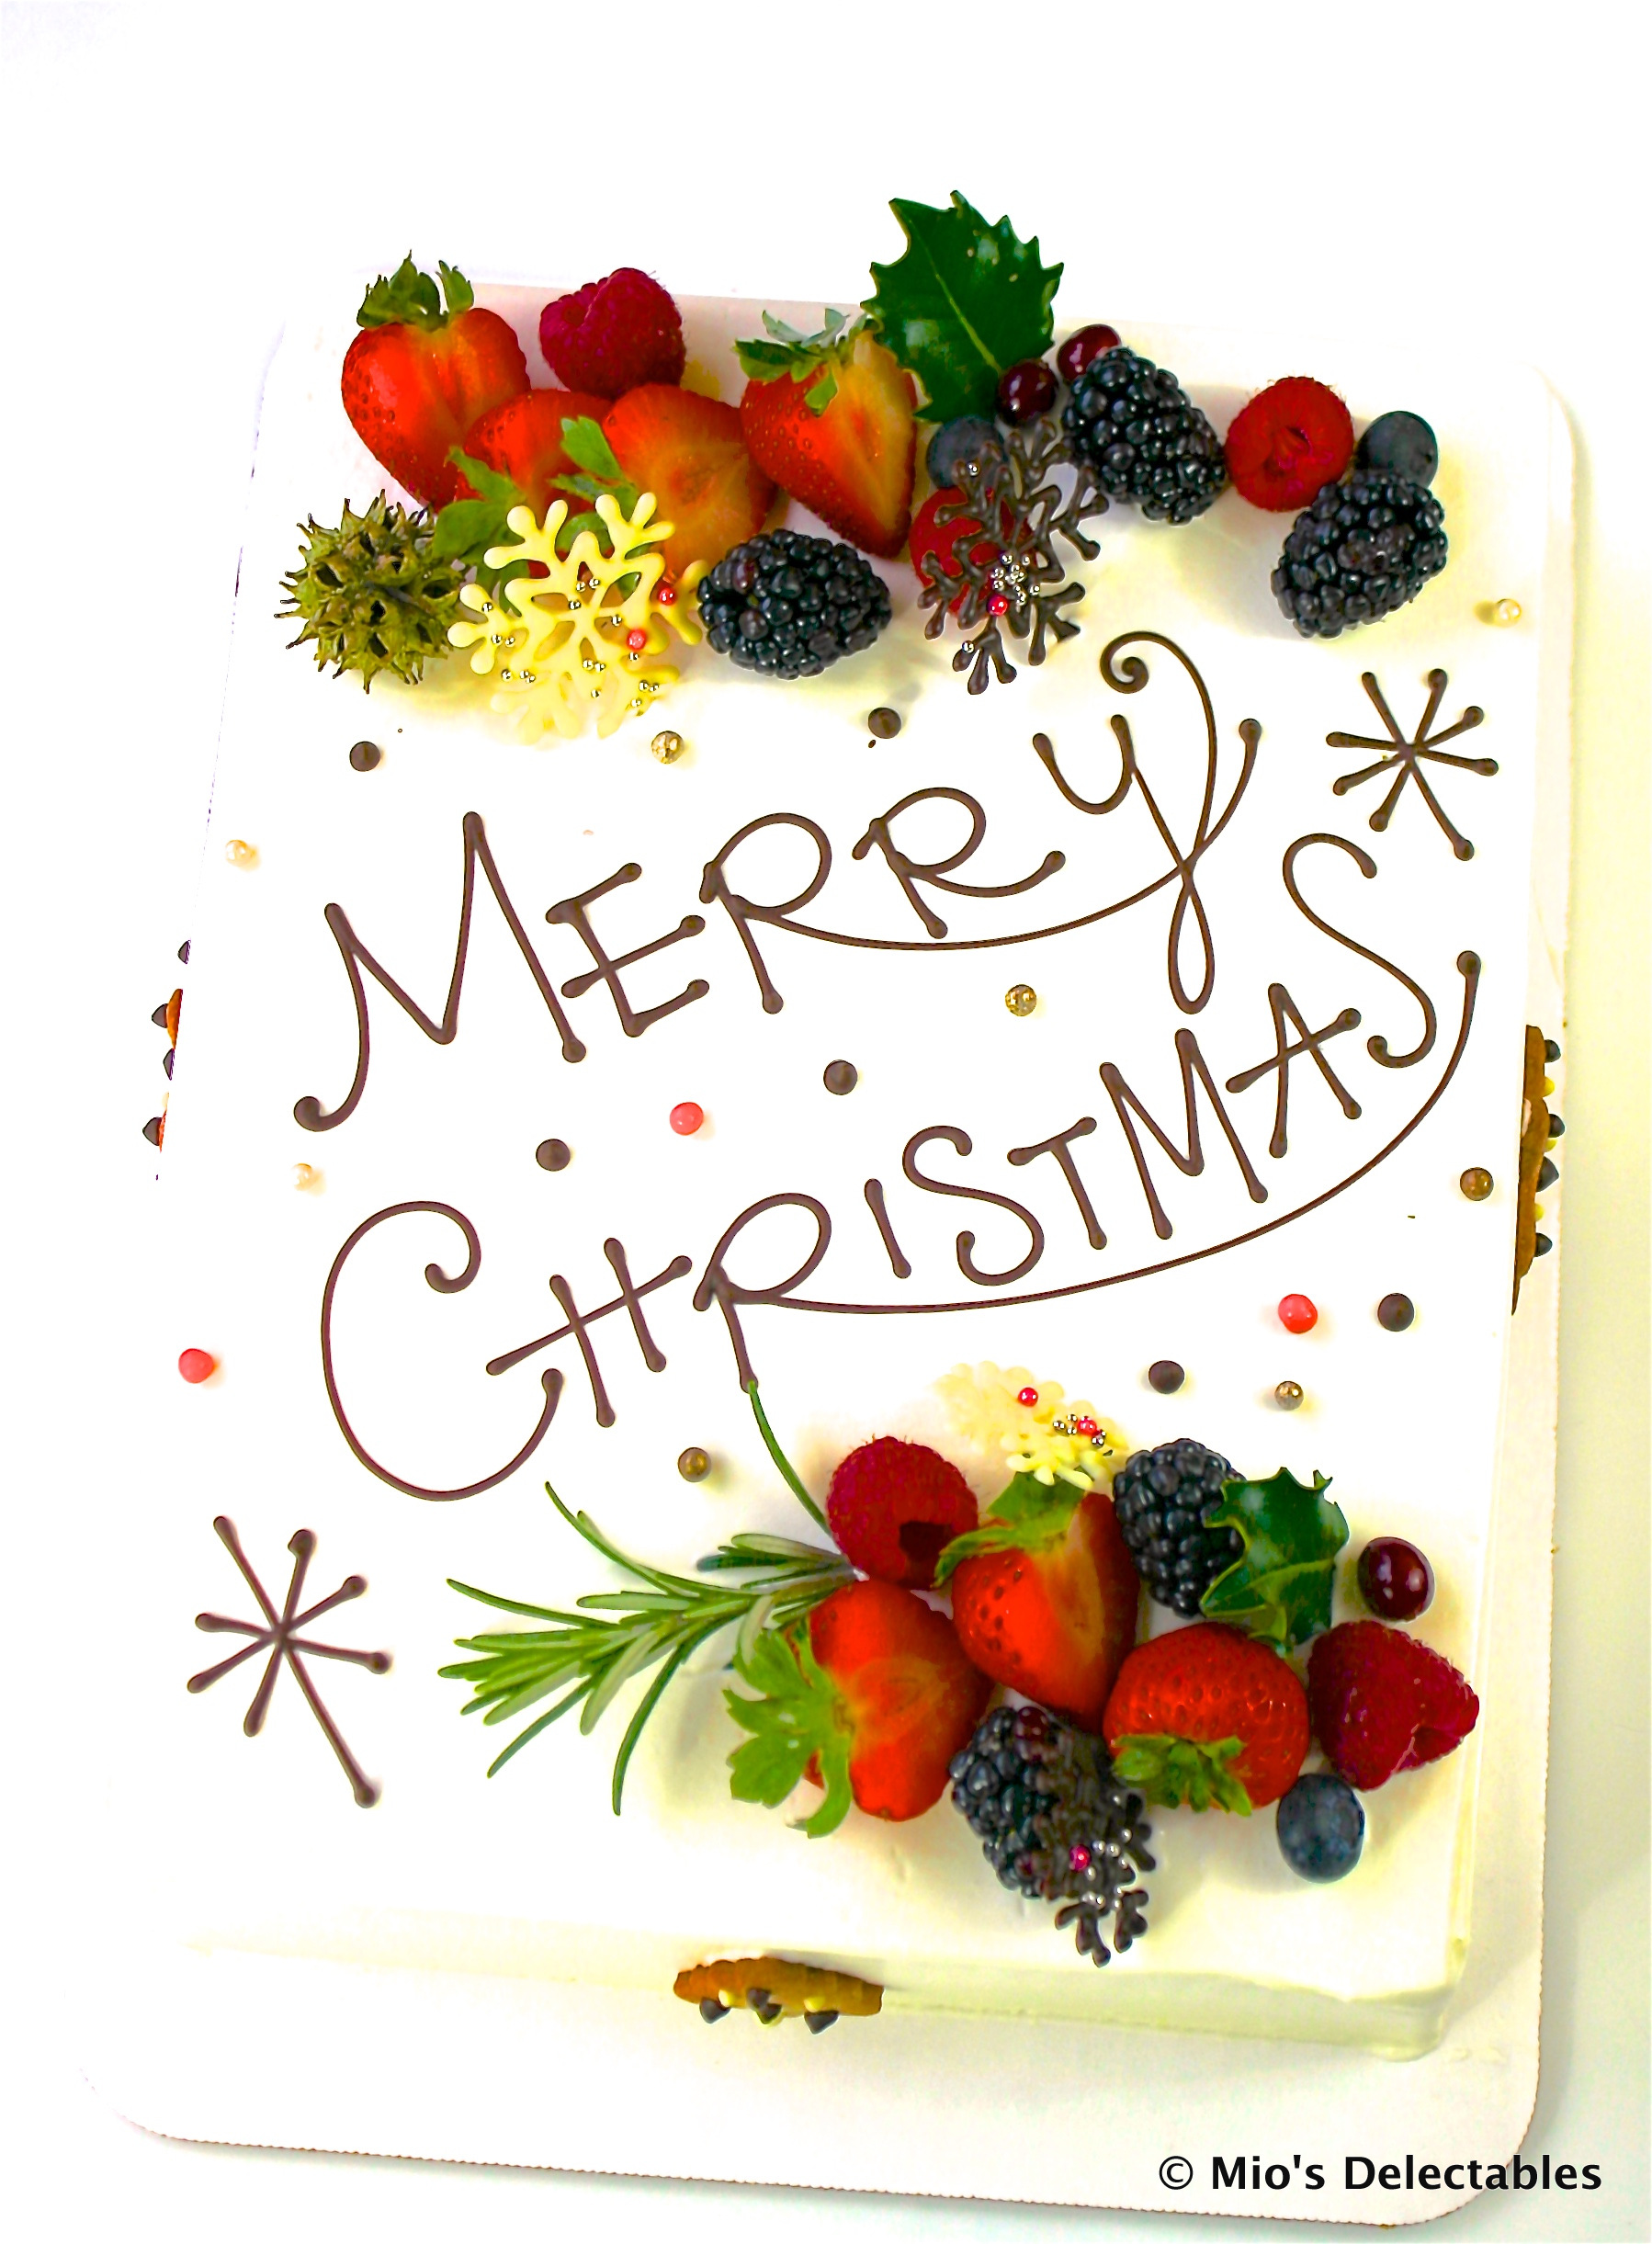 """SOLD OUT  *MIO'S DELECTABLES JAPANESE STYLE CHRISTMAS SHORTCAKE *1/8 Sheet Strawberry Short Cake (9"""" x 6"""") (23cm x 15cm) Vanilla $50 *1/4 Sheet Strawberry Short Cake (9"""" x 12"""") (23cmx 30cm) Vanilla $90  https://www.miosdelectables.com/christmas-cake-preorder/mios-delectables-japanese-style-christmas-cake"""